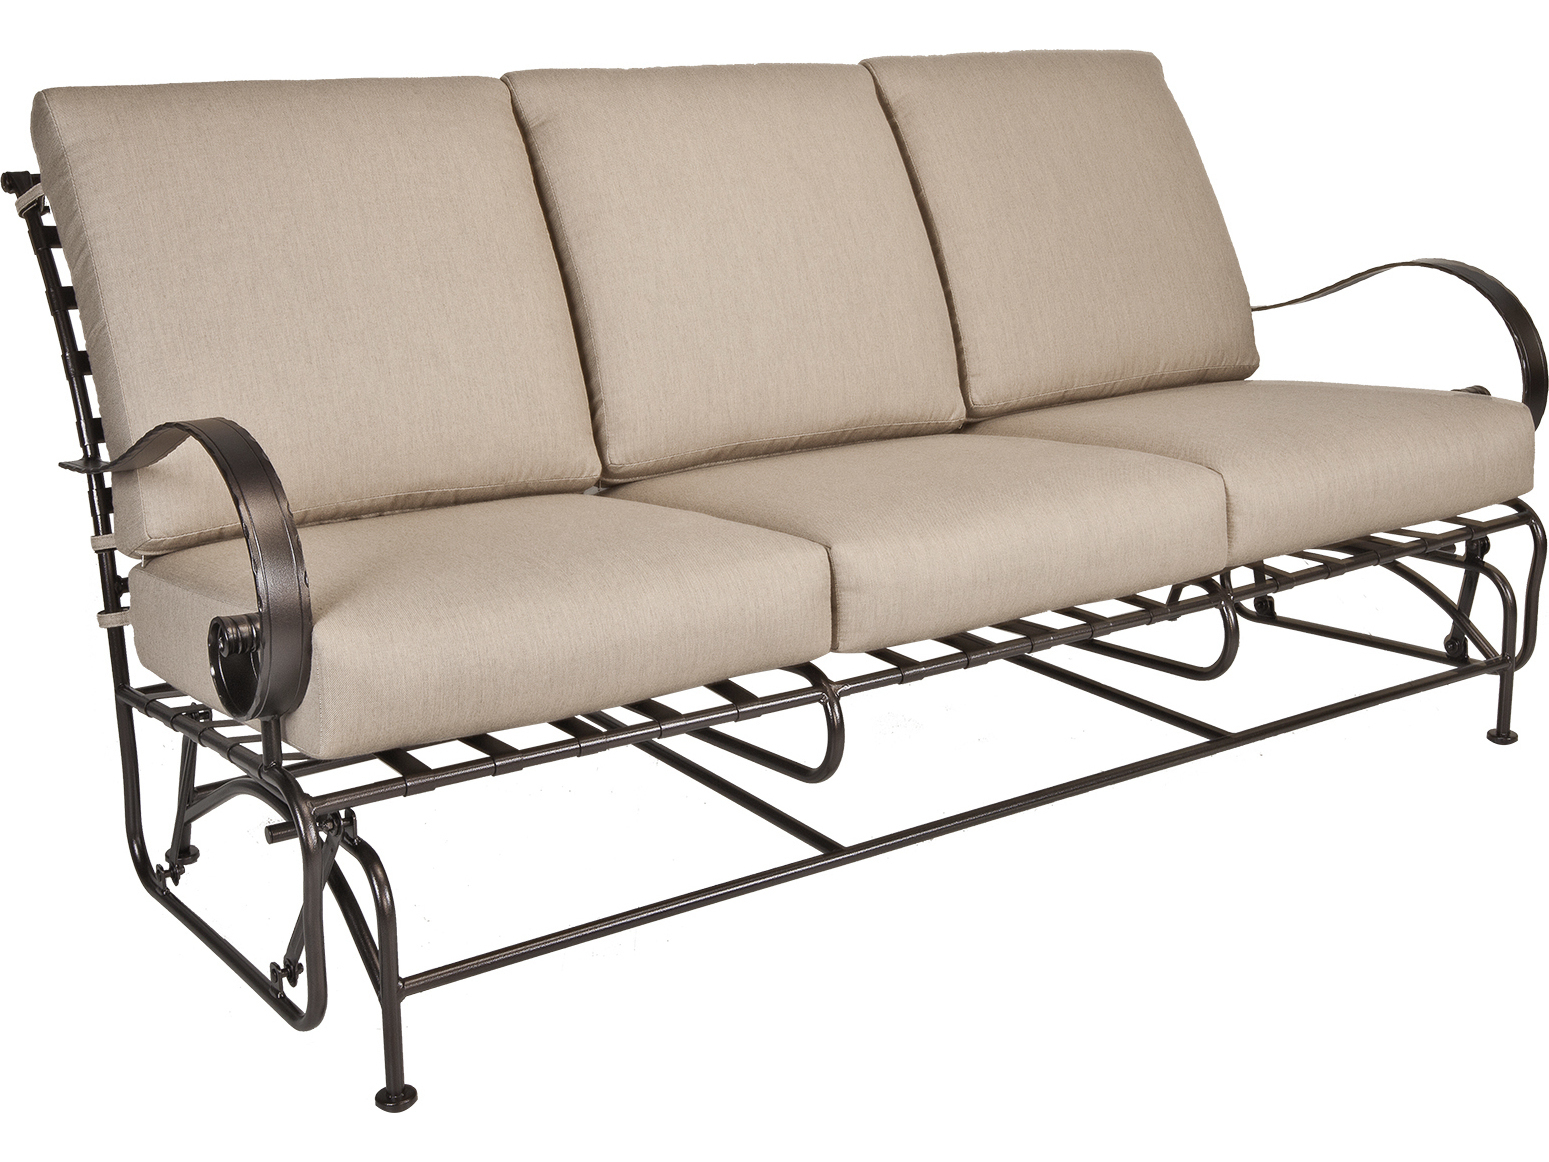 Ow Lee Classico Wide Arms Wrought Iron Sofa Glider 956 3gw